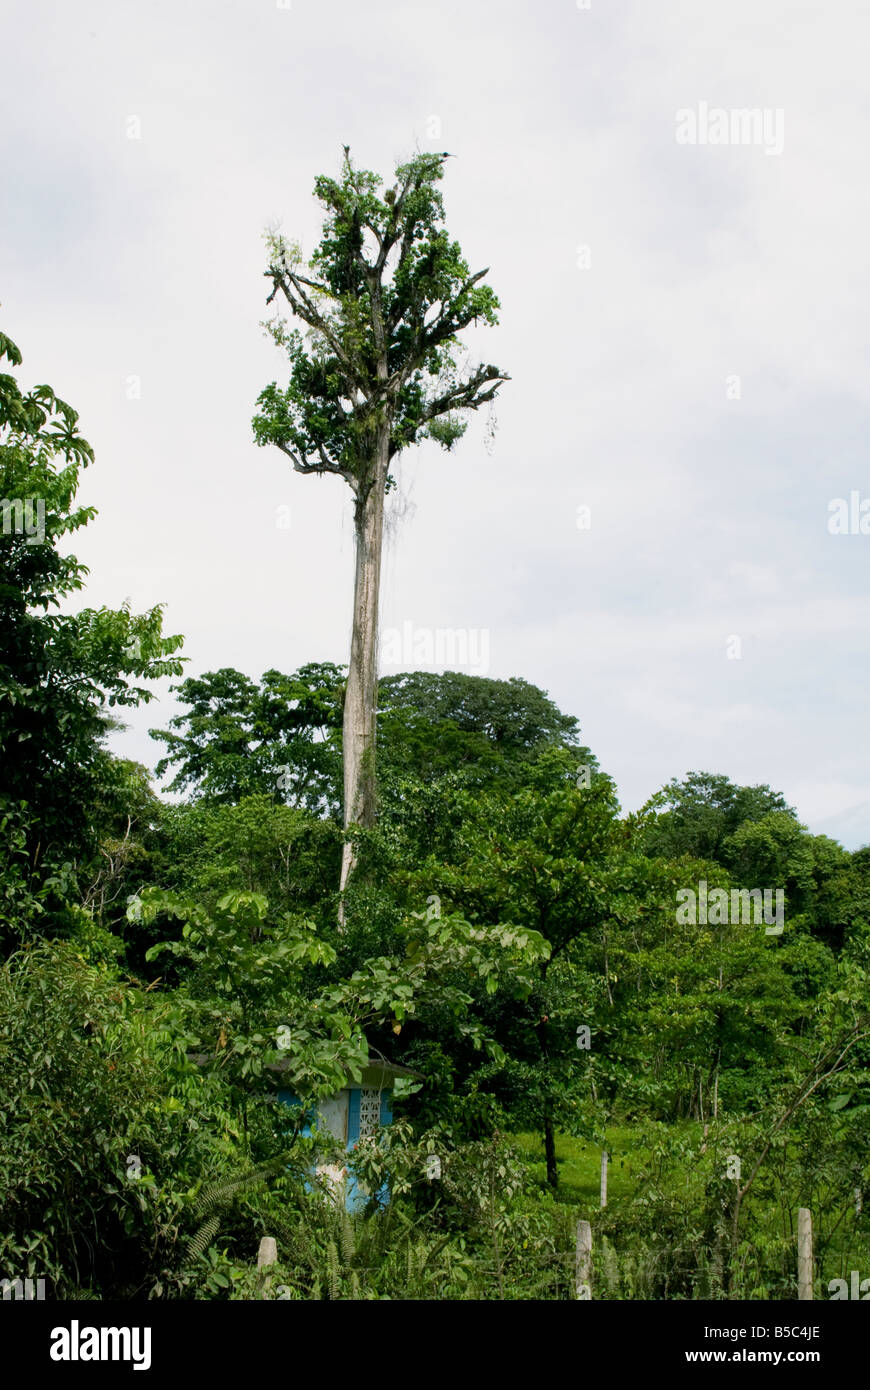 This tree stands out from the rest as it is noticeable high and clear of other trees Photo taken 04SEP08 in Puerto - Stock Image